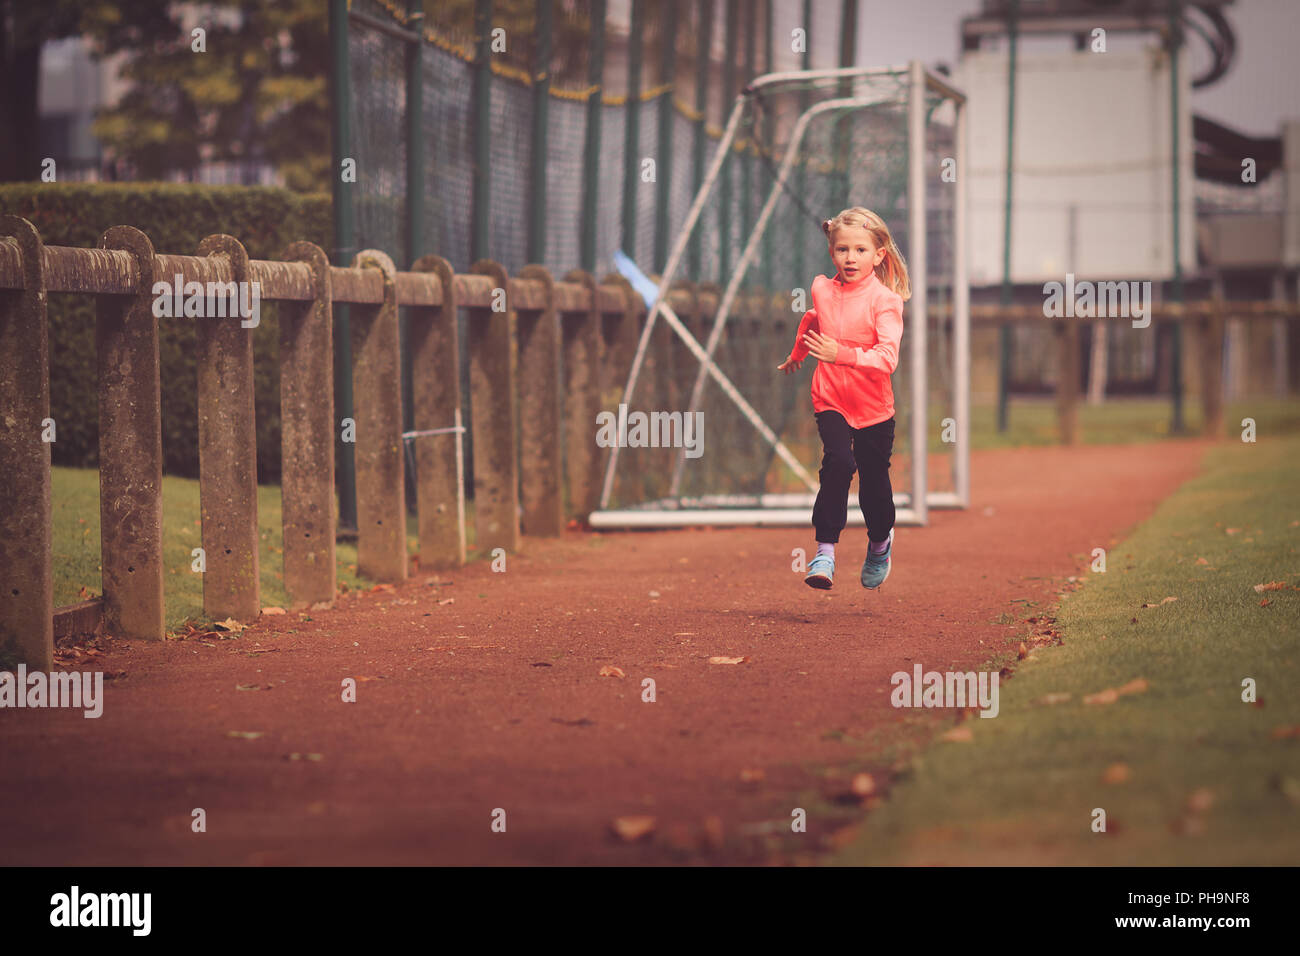 Young girl aged 5-7 running on athletic race track Stock Photo